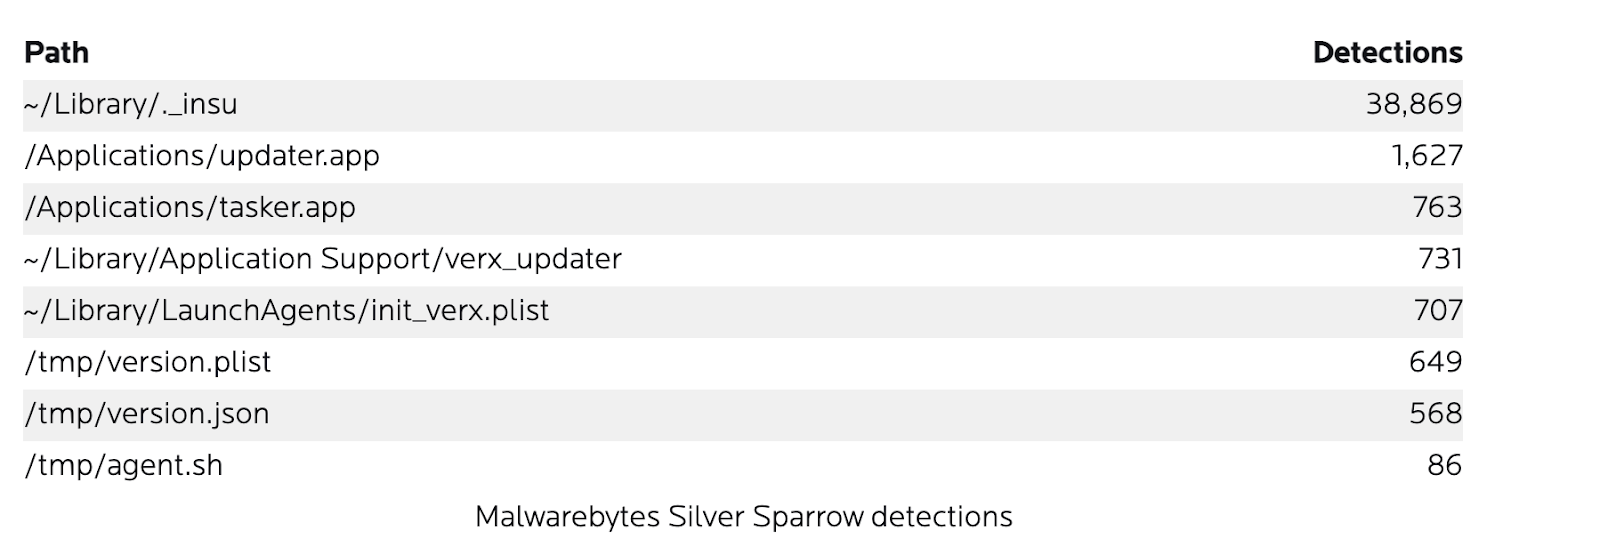 Malwarebytes detected over 30,000 instances of the ._insu file